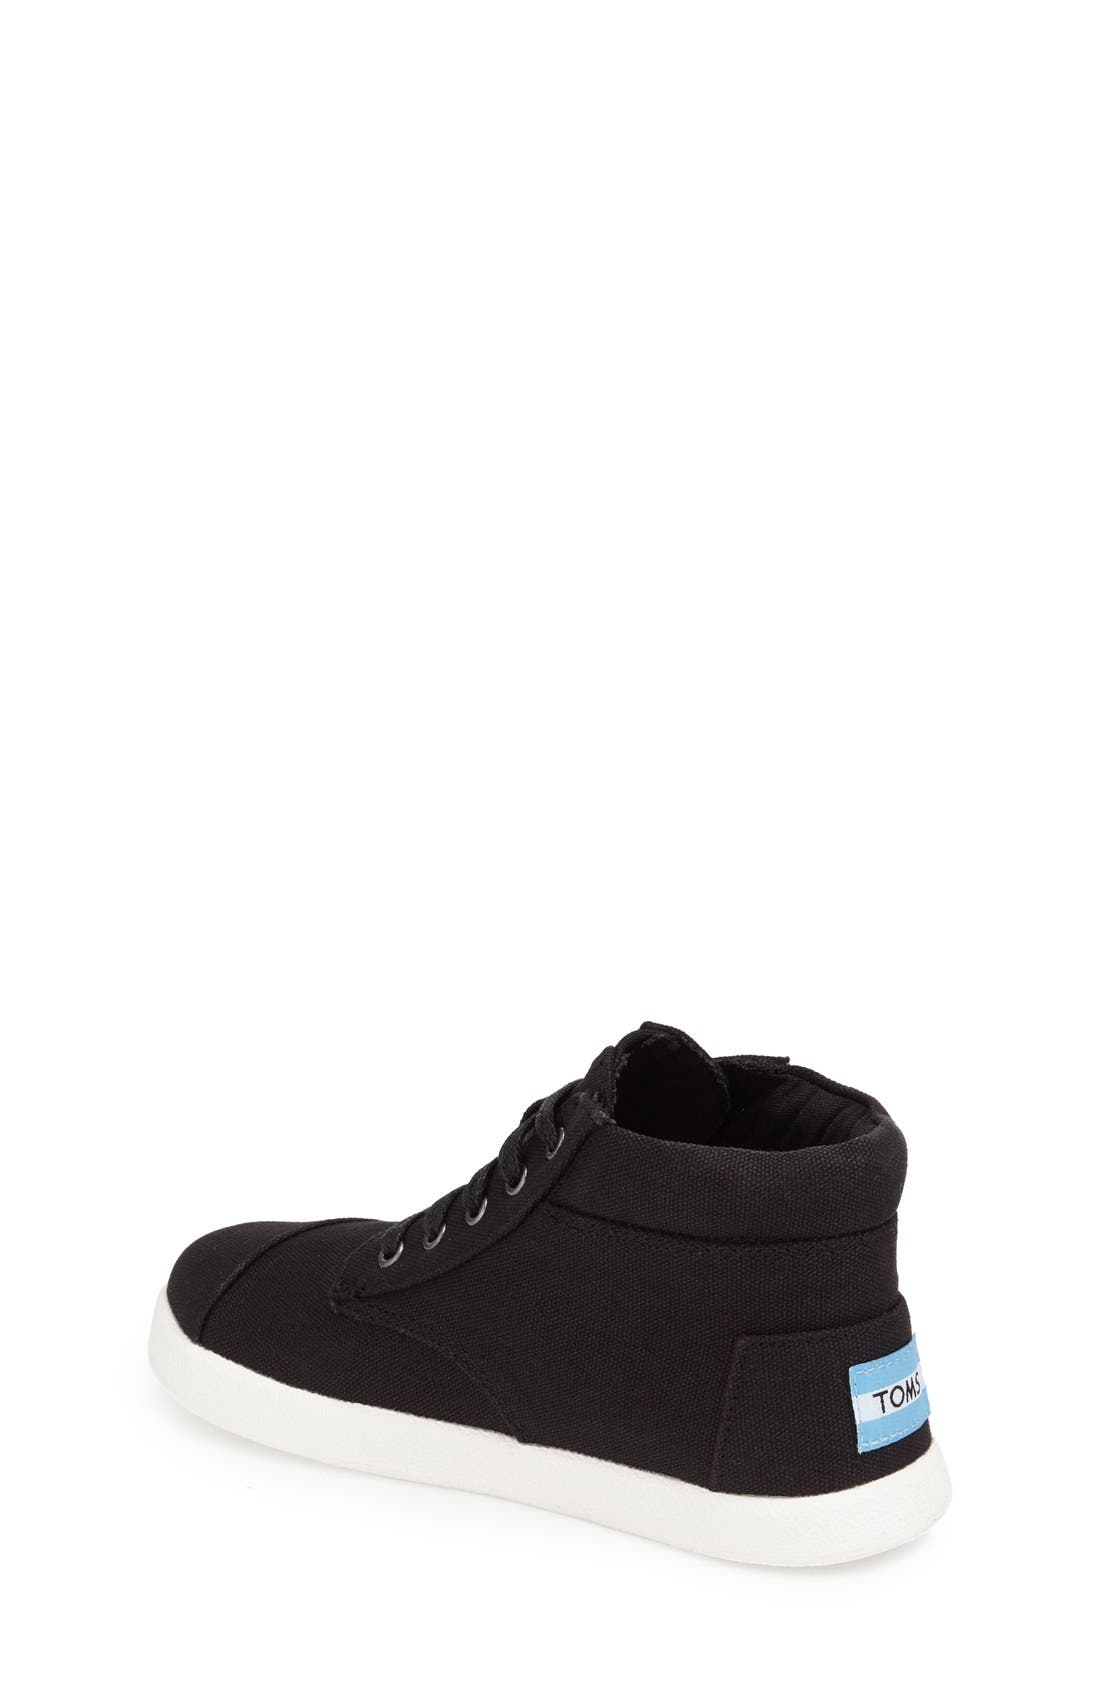 Alternate Image 2  - TOMS 'Paseo' High Top Sneaker (Toddler, Little Kid & Big Kid)